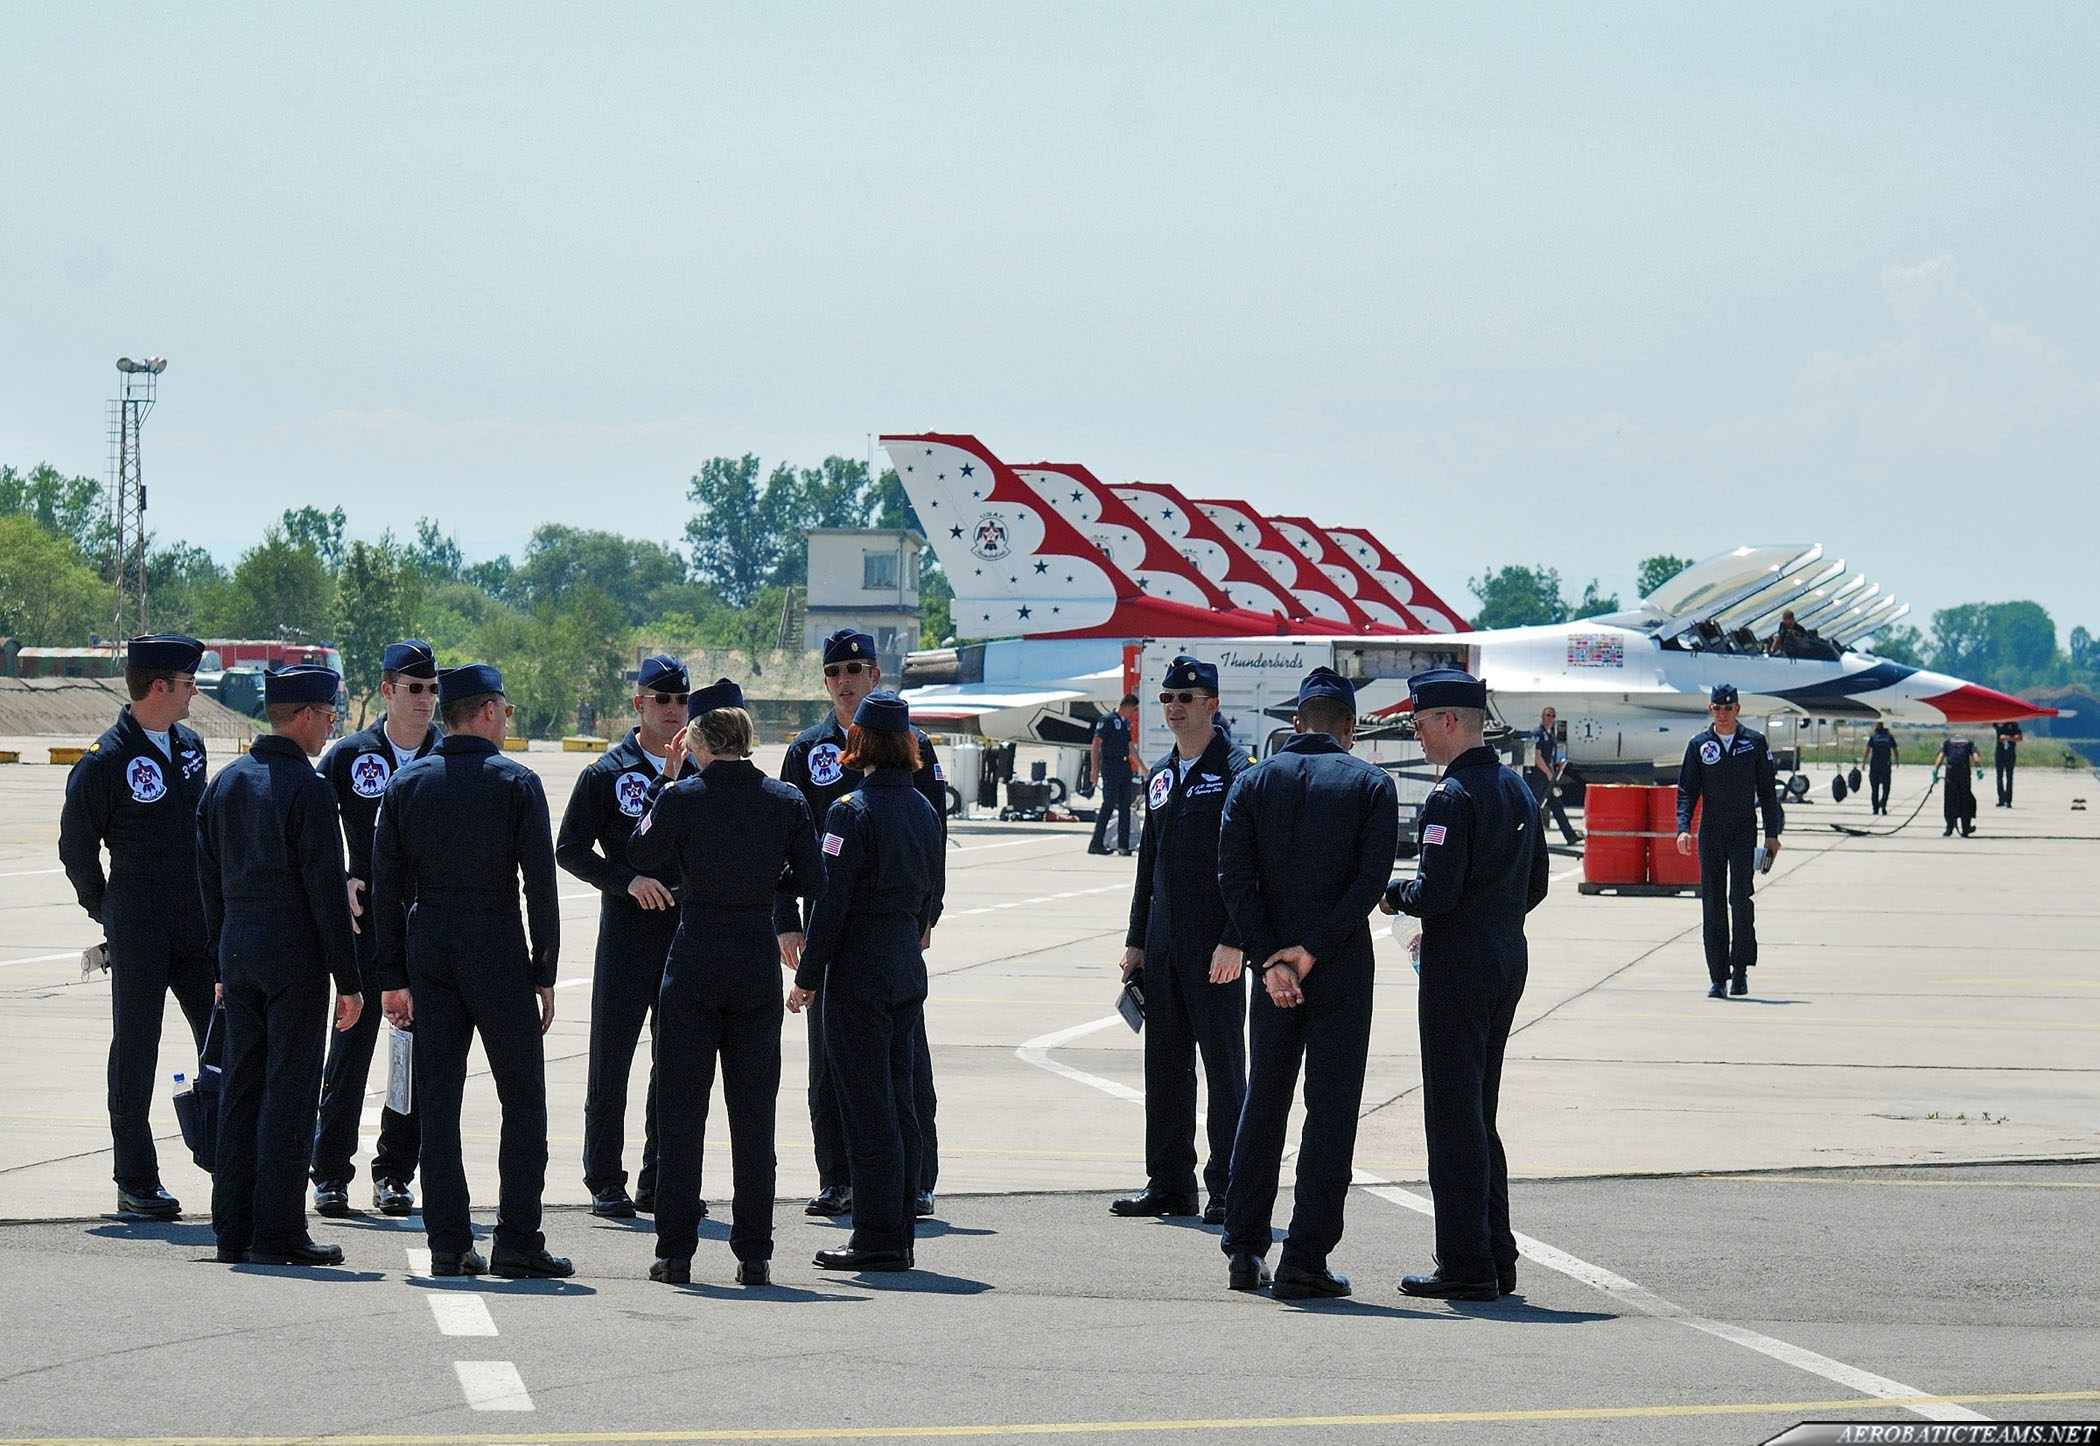 Thunderbirds pilots after flight